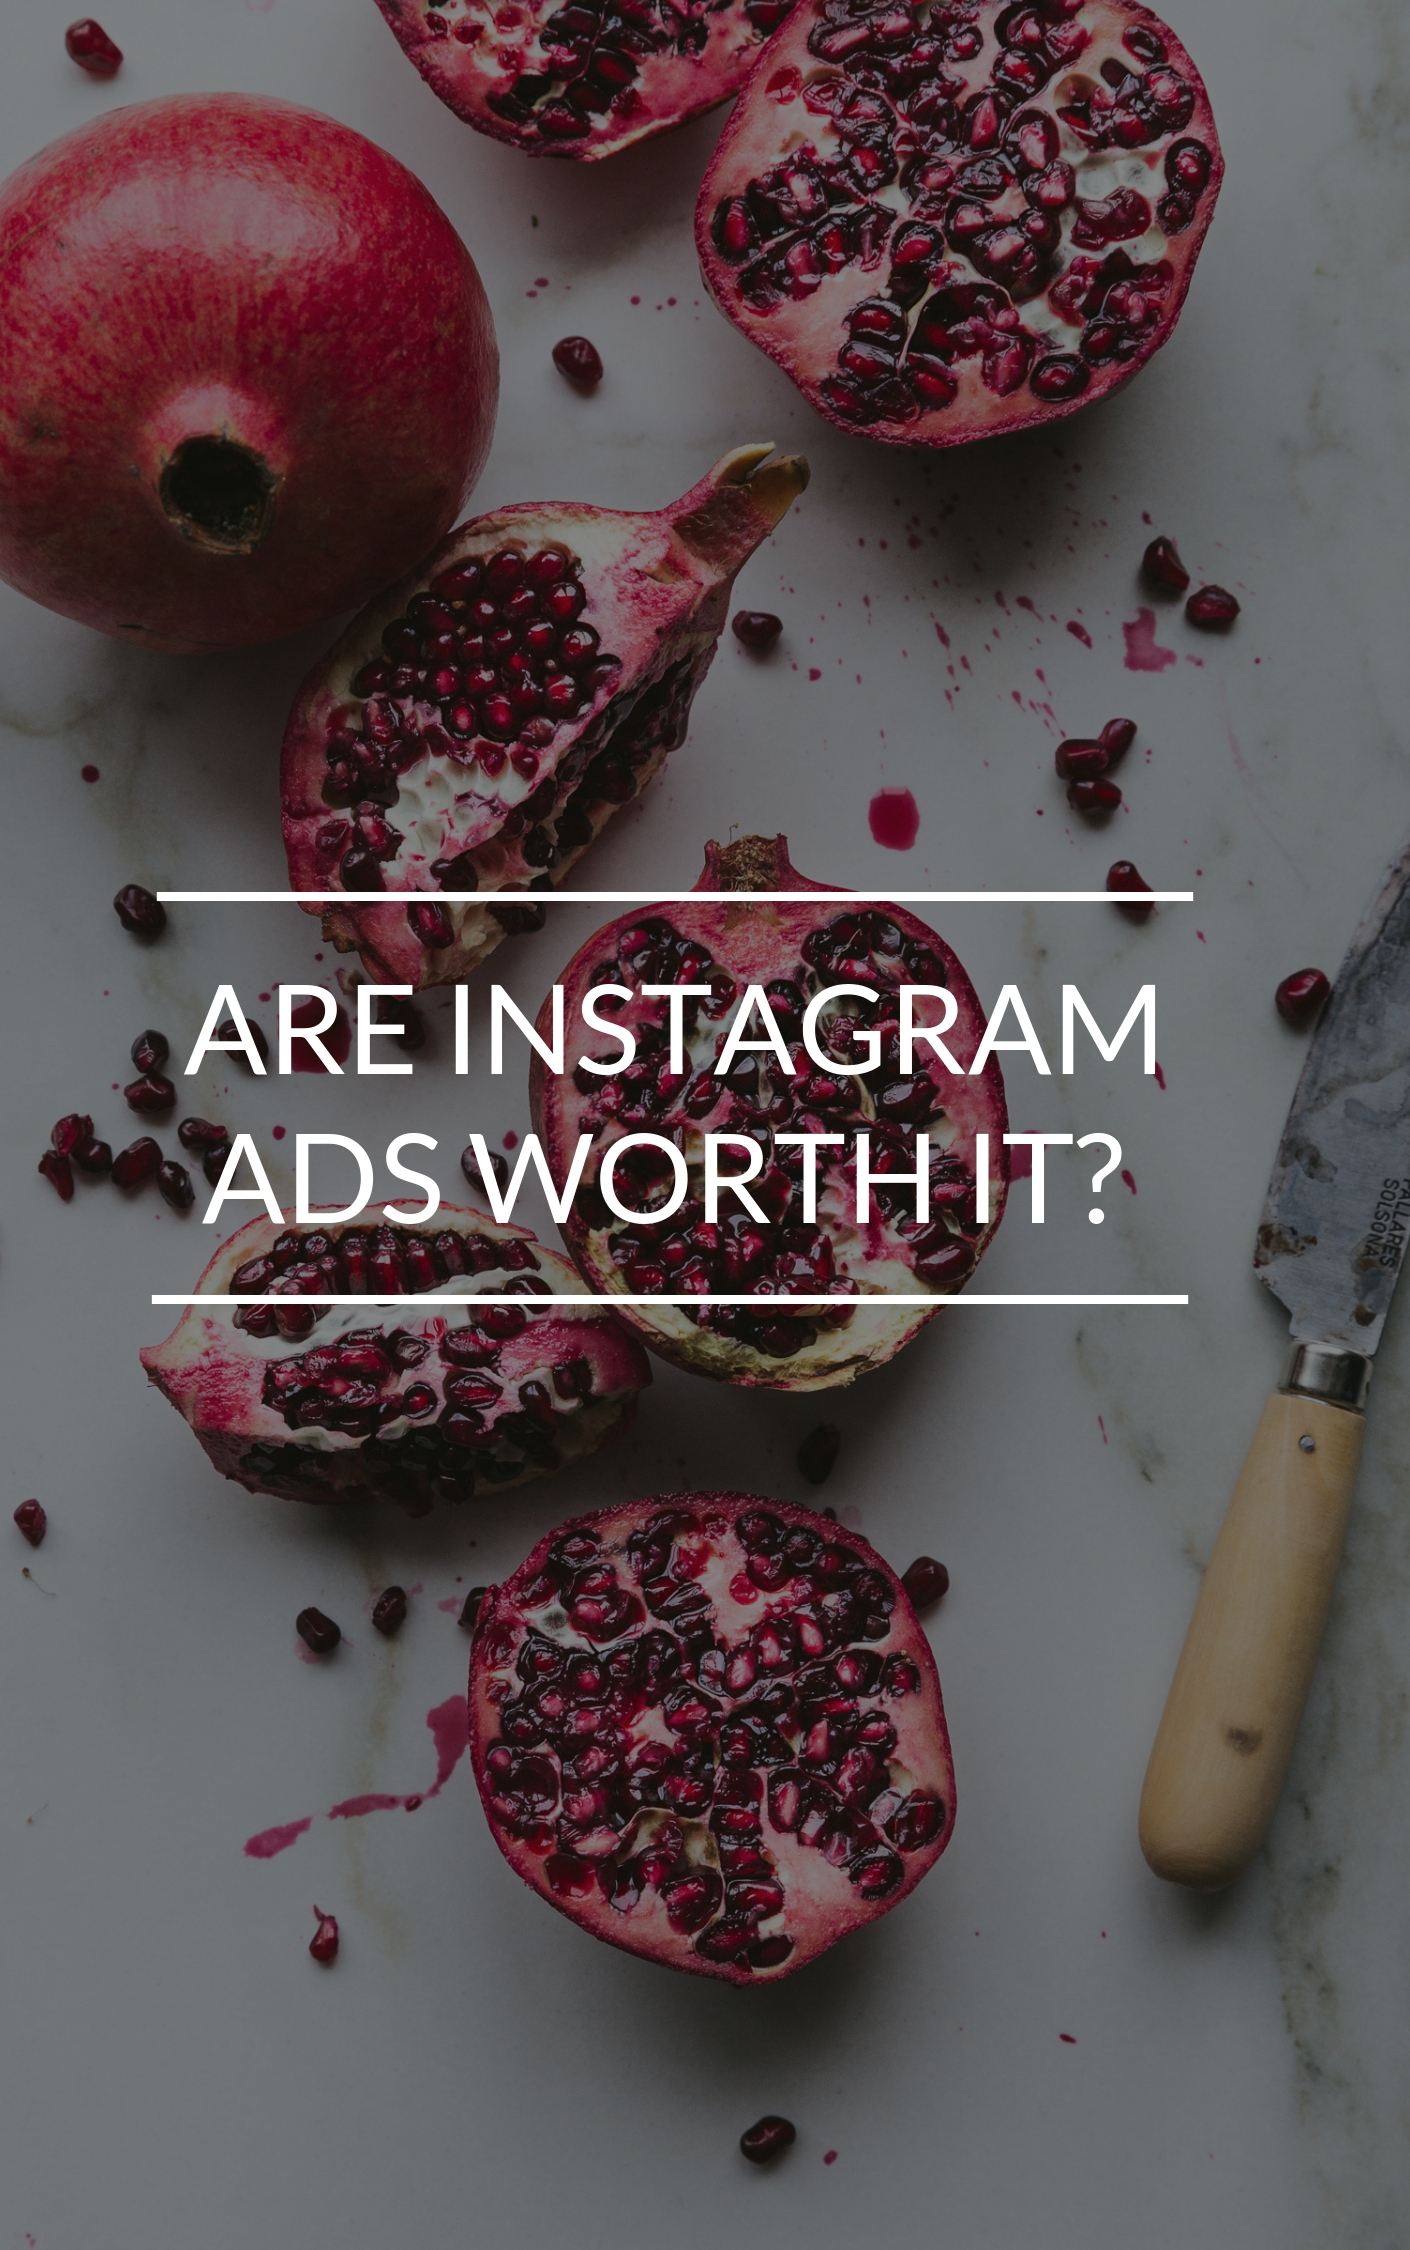 How to use instagram ads to promote my blog?